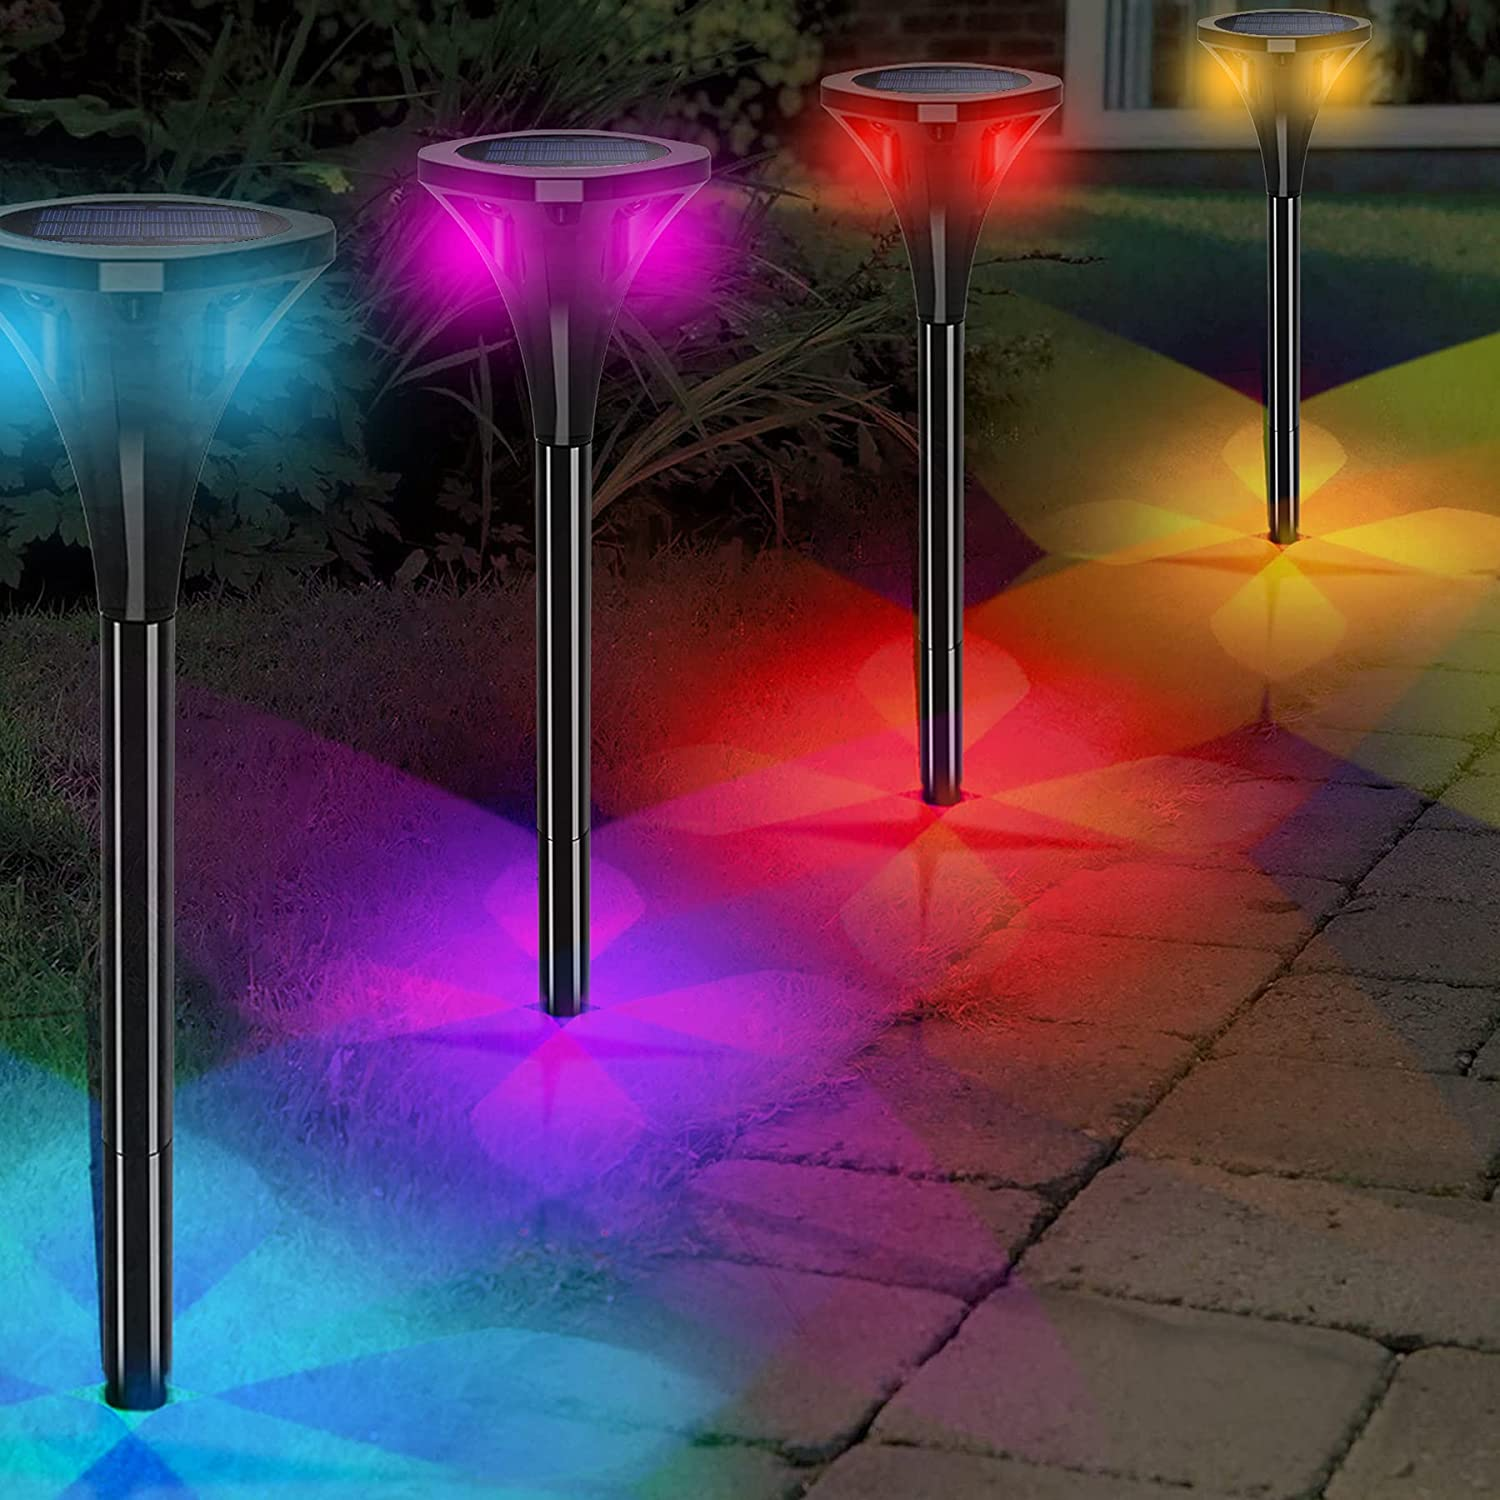 T-SUNUS Solar Path Lights 4 Pack Color Changing Solar Pathway Lights Landscape Path Lights RGB Solar Stake Lights for Garden Driveway Lawn Decorations